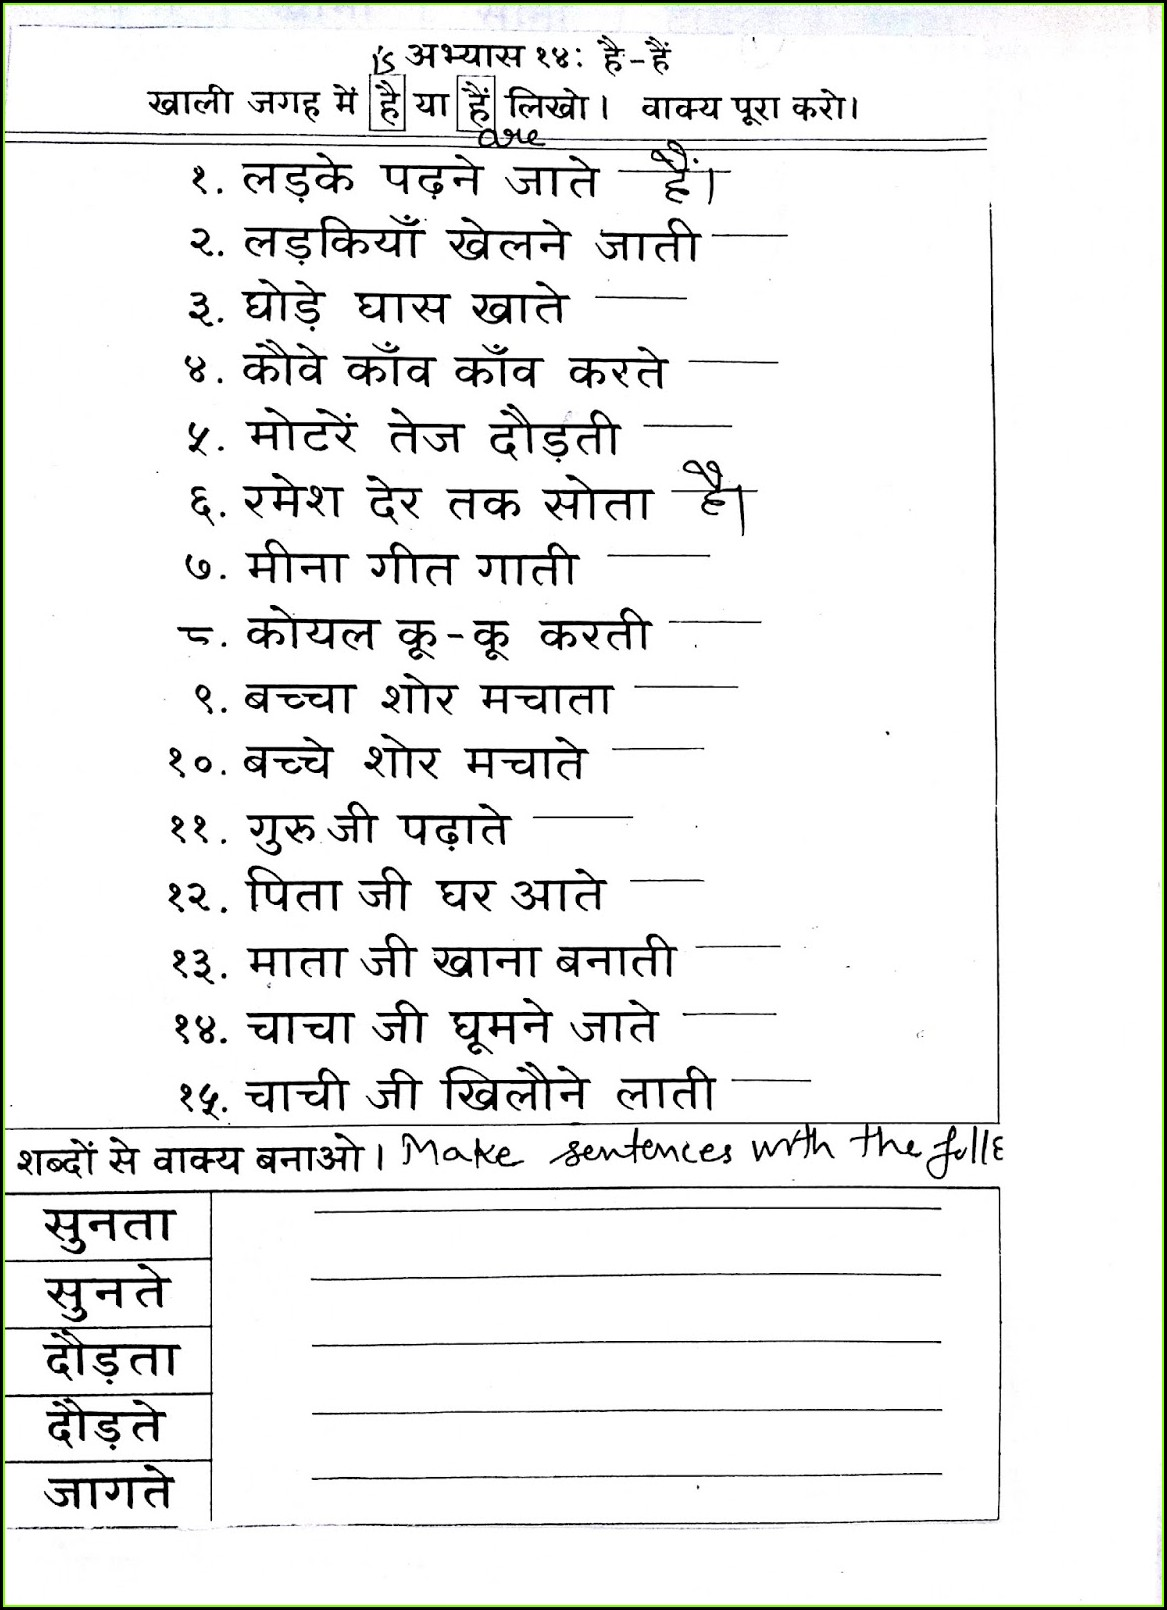 Hindi Ling Badlo Worksheet For Class 5 Worksheet Resume